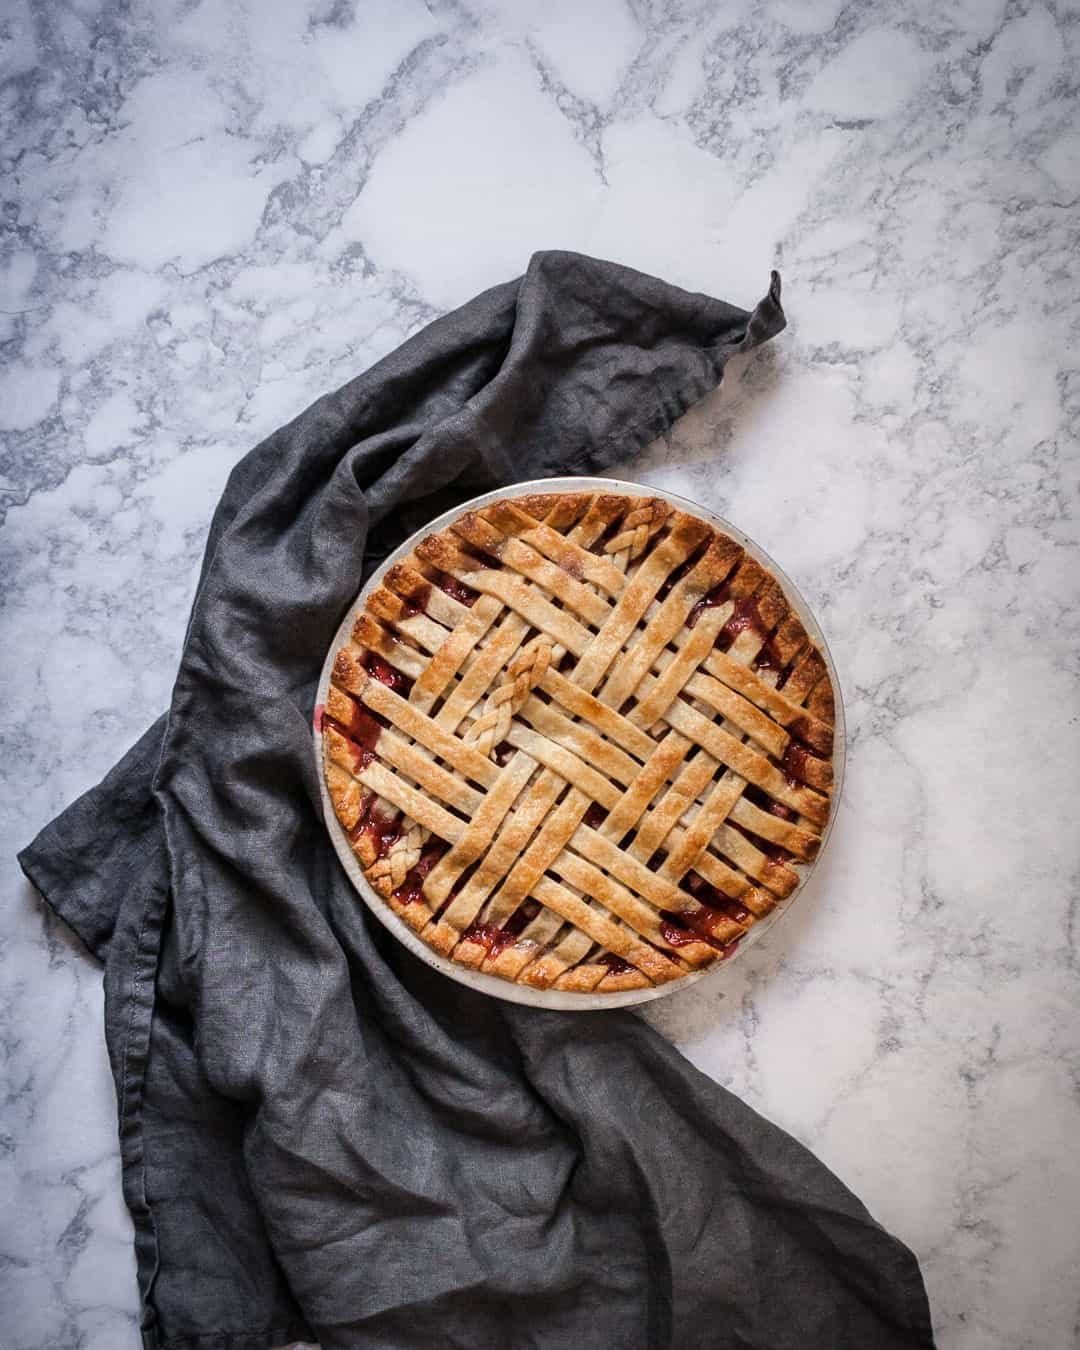 Marble surface with baked lattice pie with a grey linen towel nearby